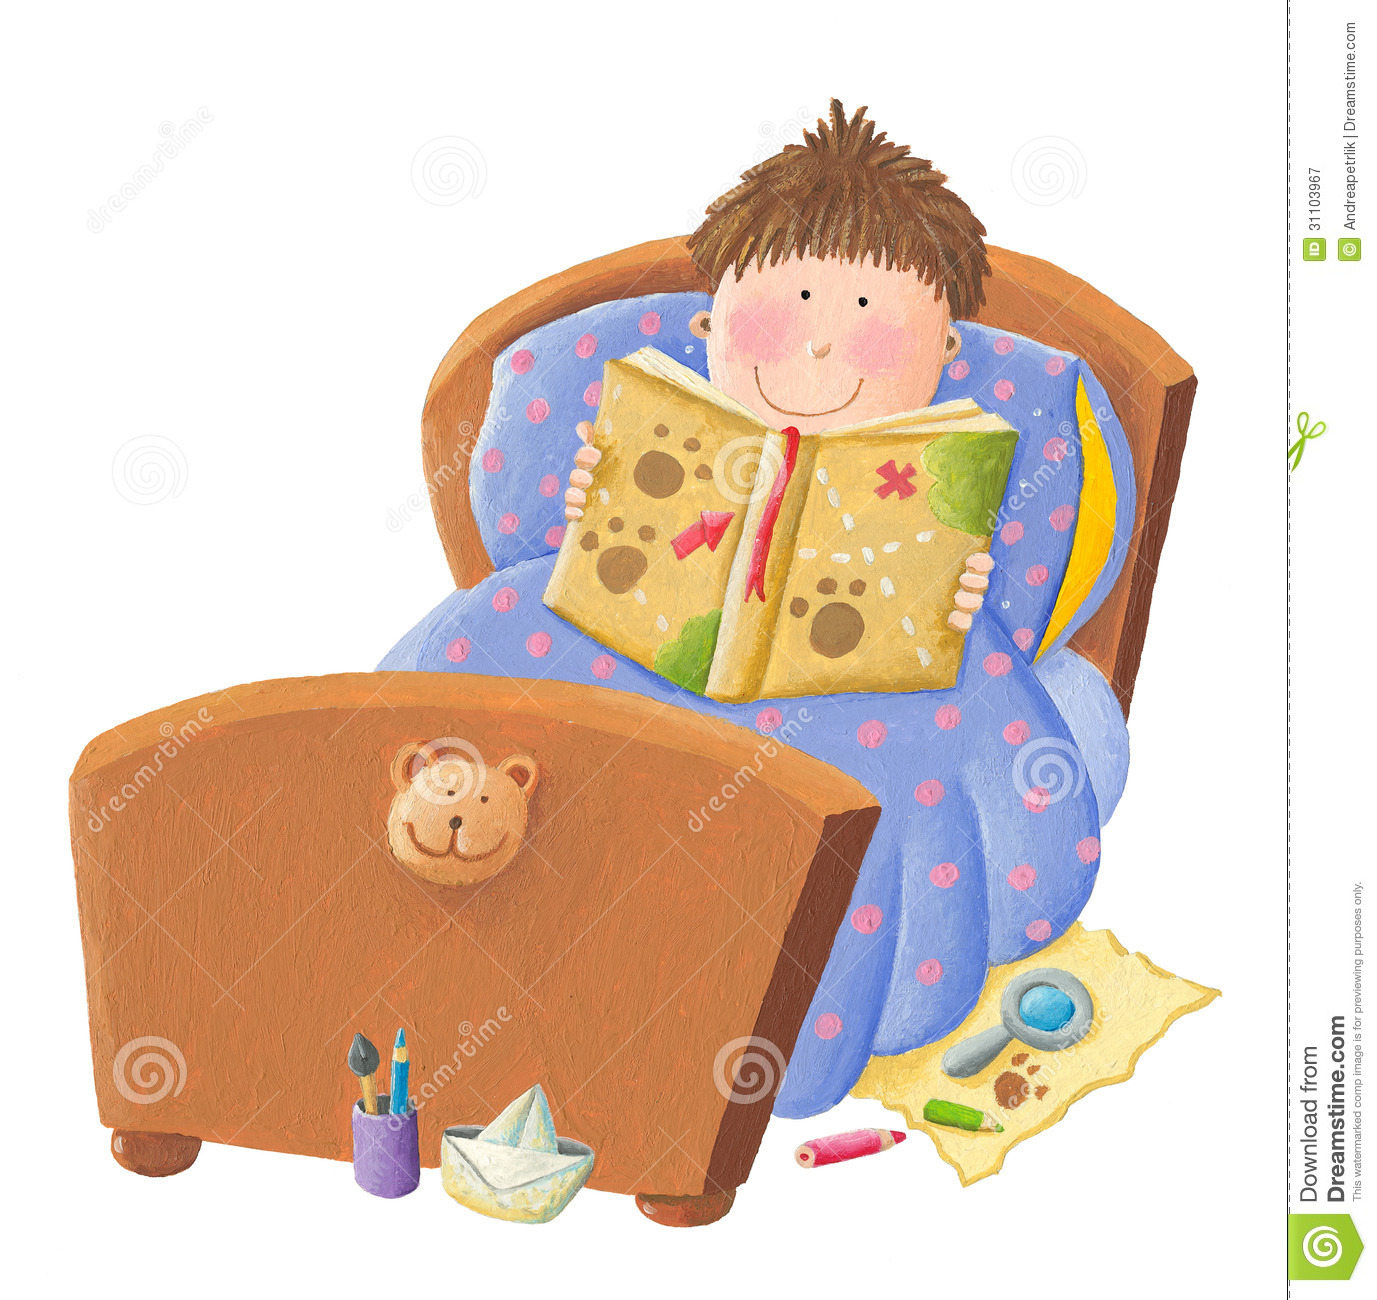 Boy reading bed time story royalty free stock photography image